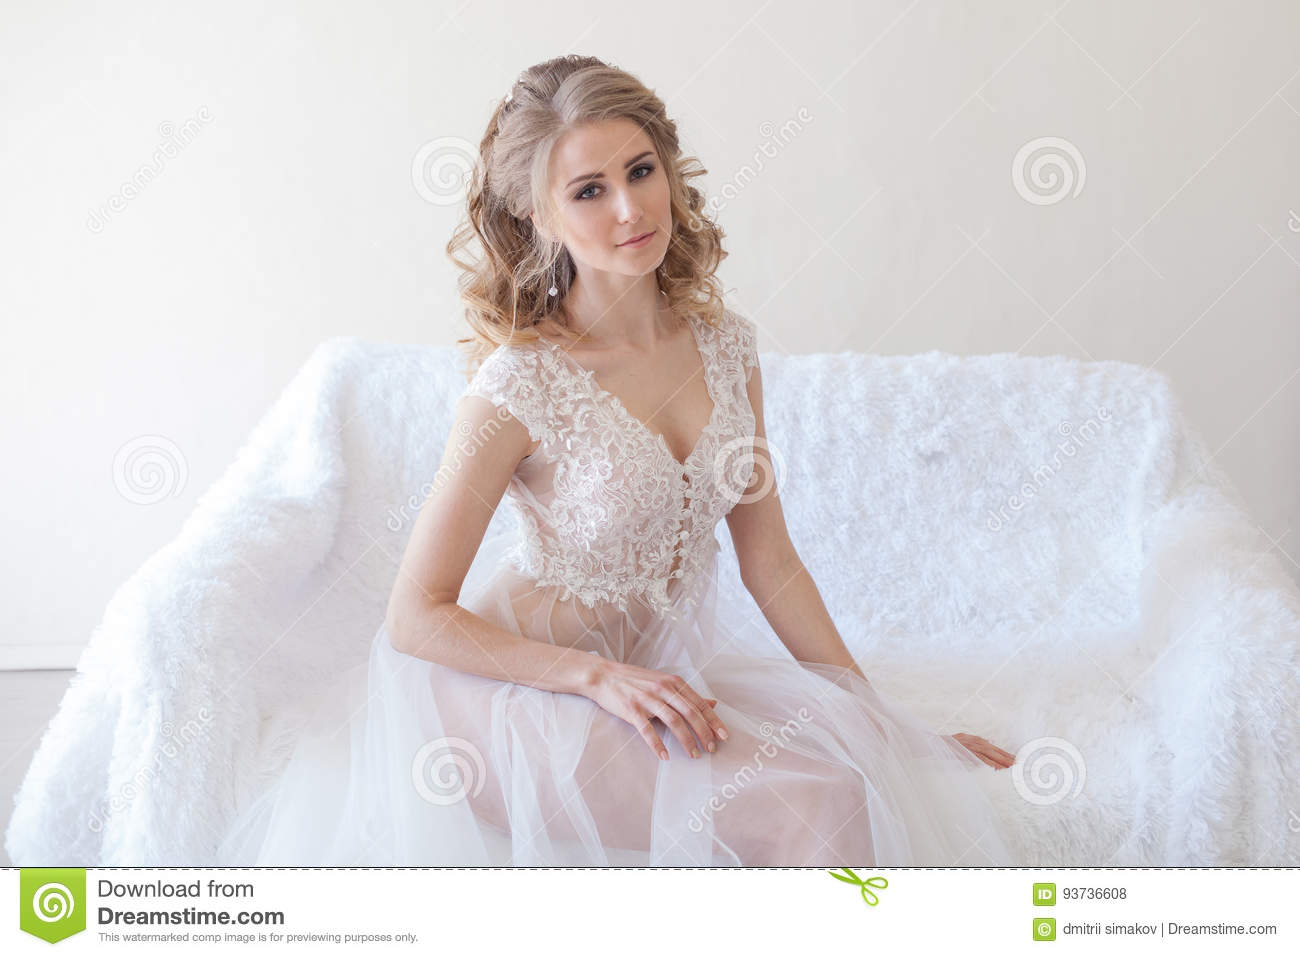 Beautiful girl in lingerie sitting on a white couch wedding